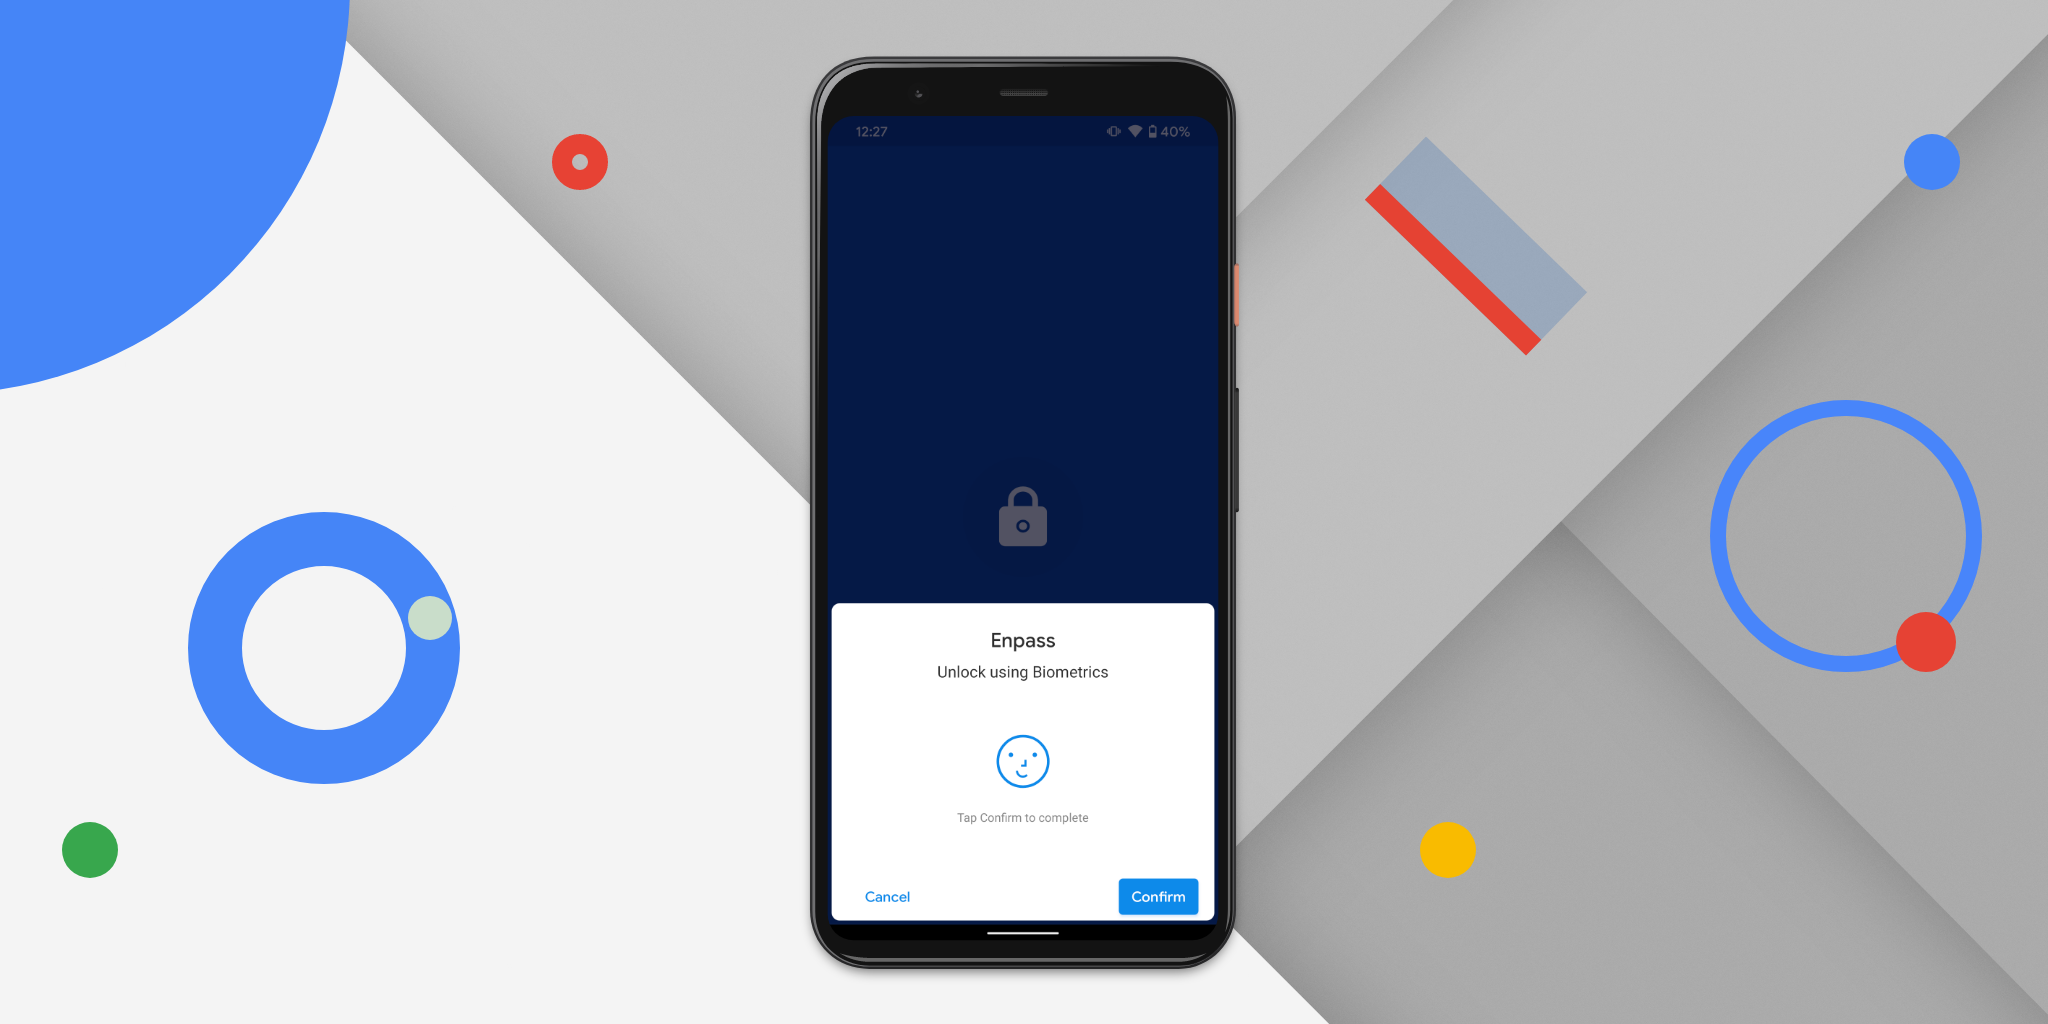 Enpass supports Face Unlock on your shiny new Pixel 4